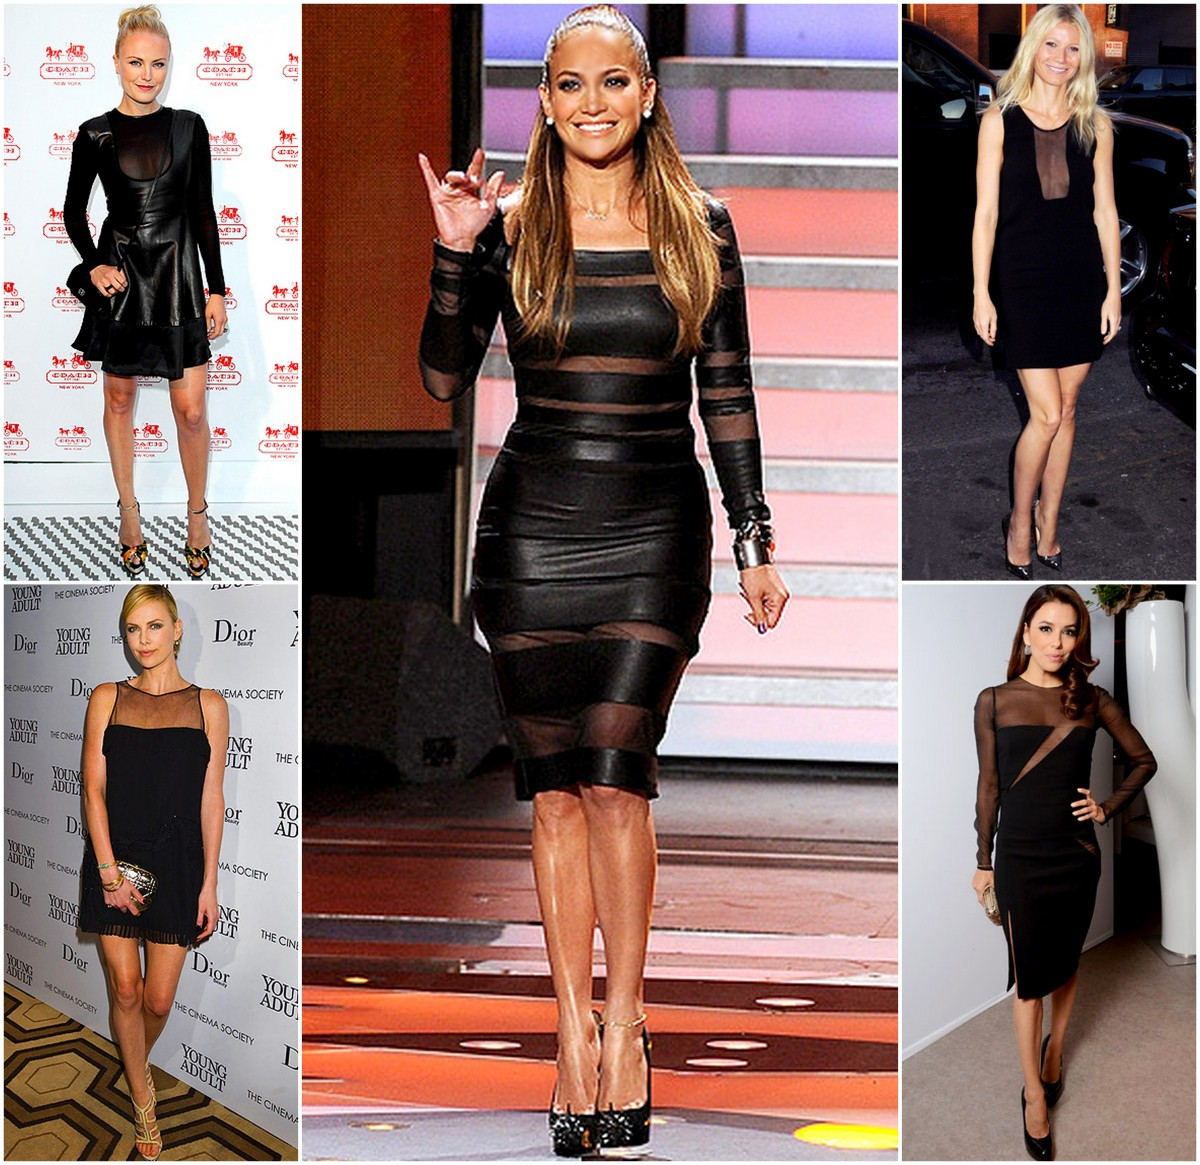 Sheer Madness: Sizzle In The New LBD (LSBD)